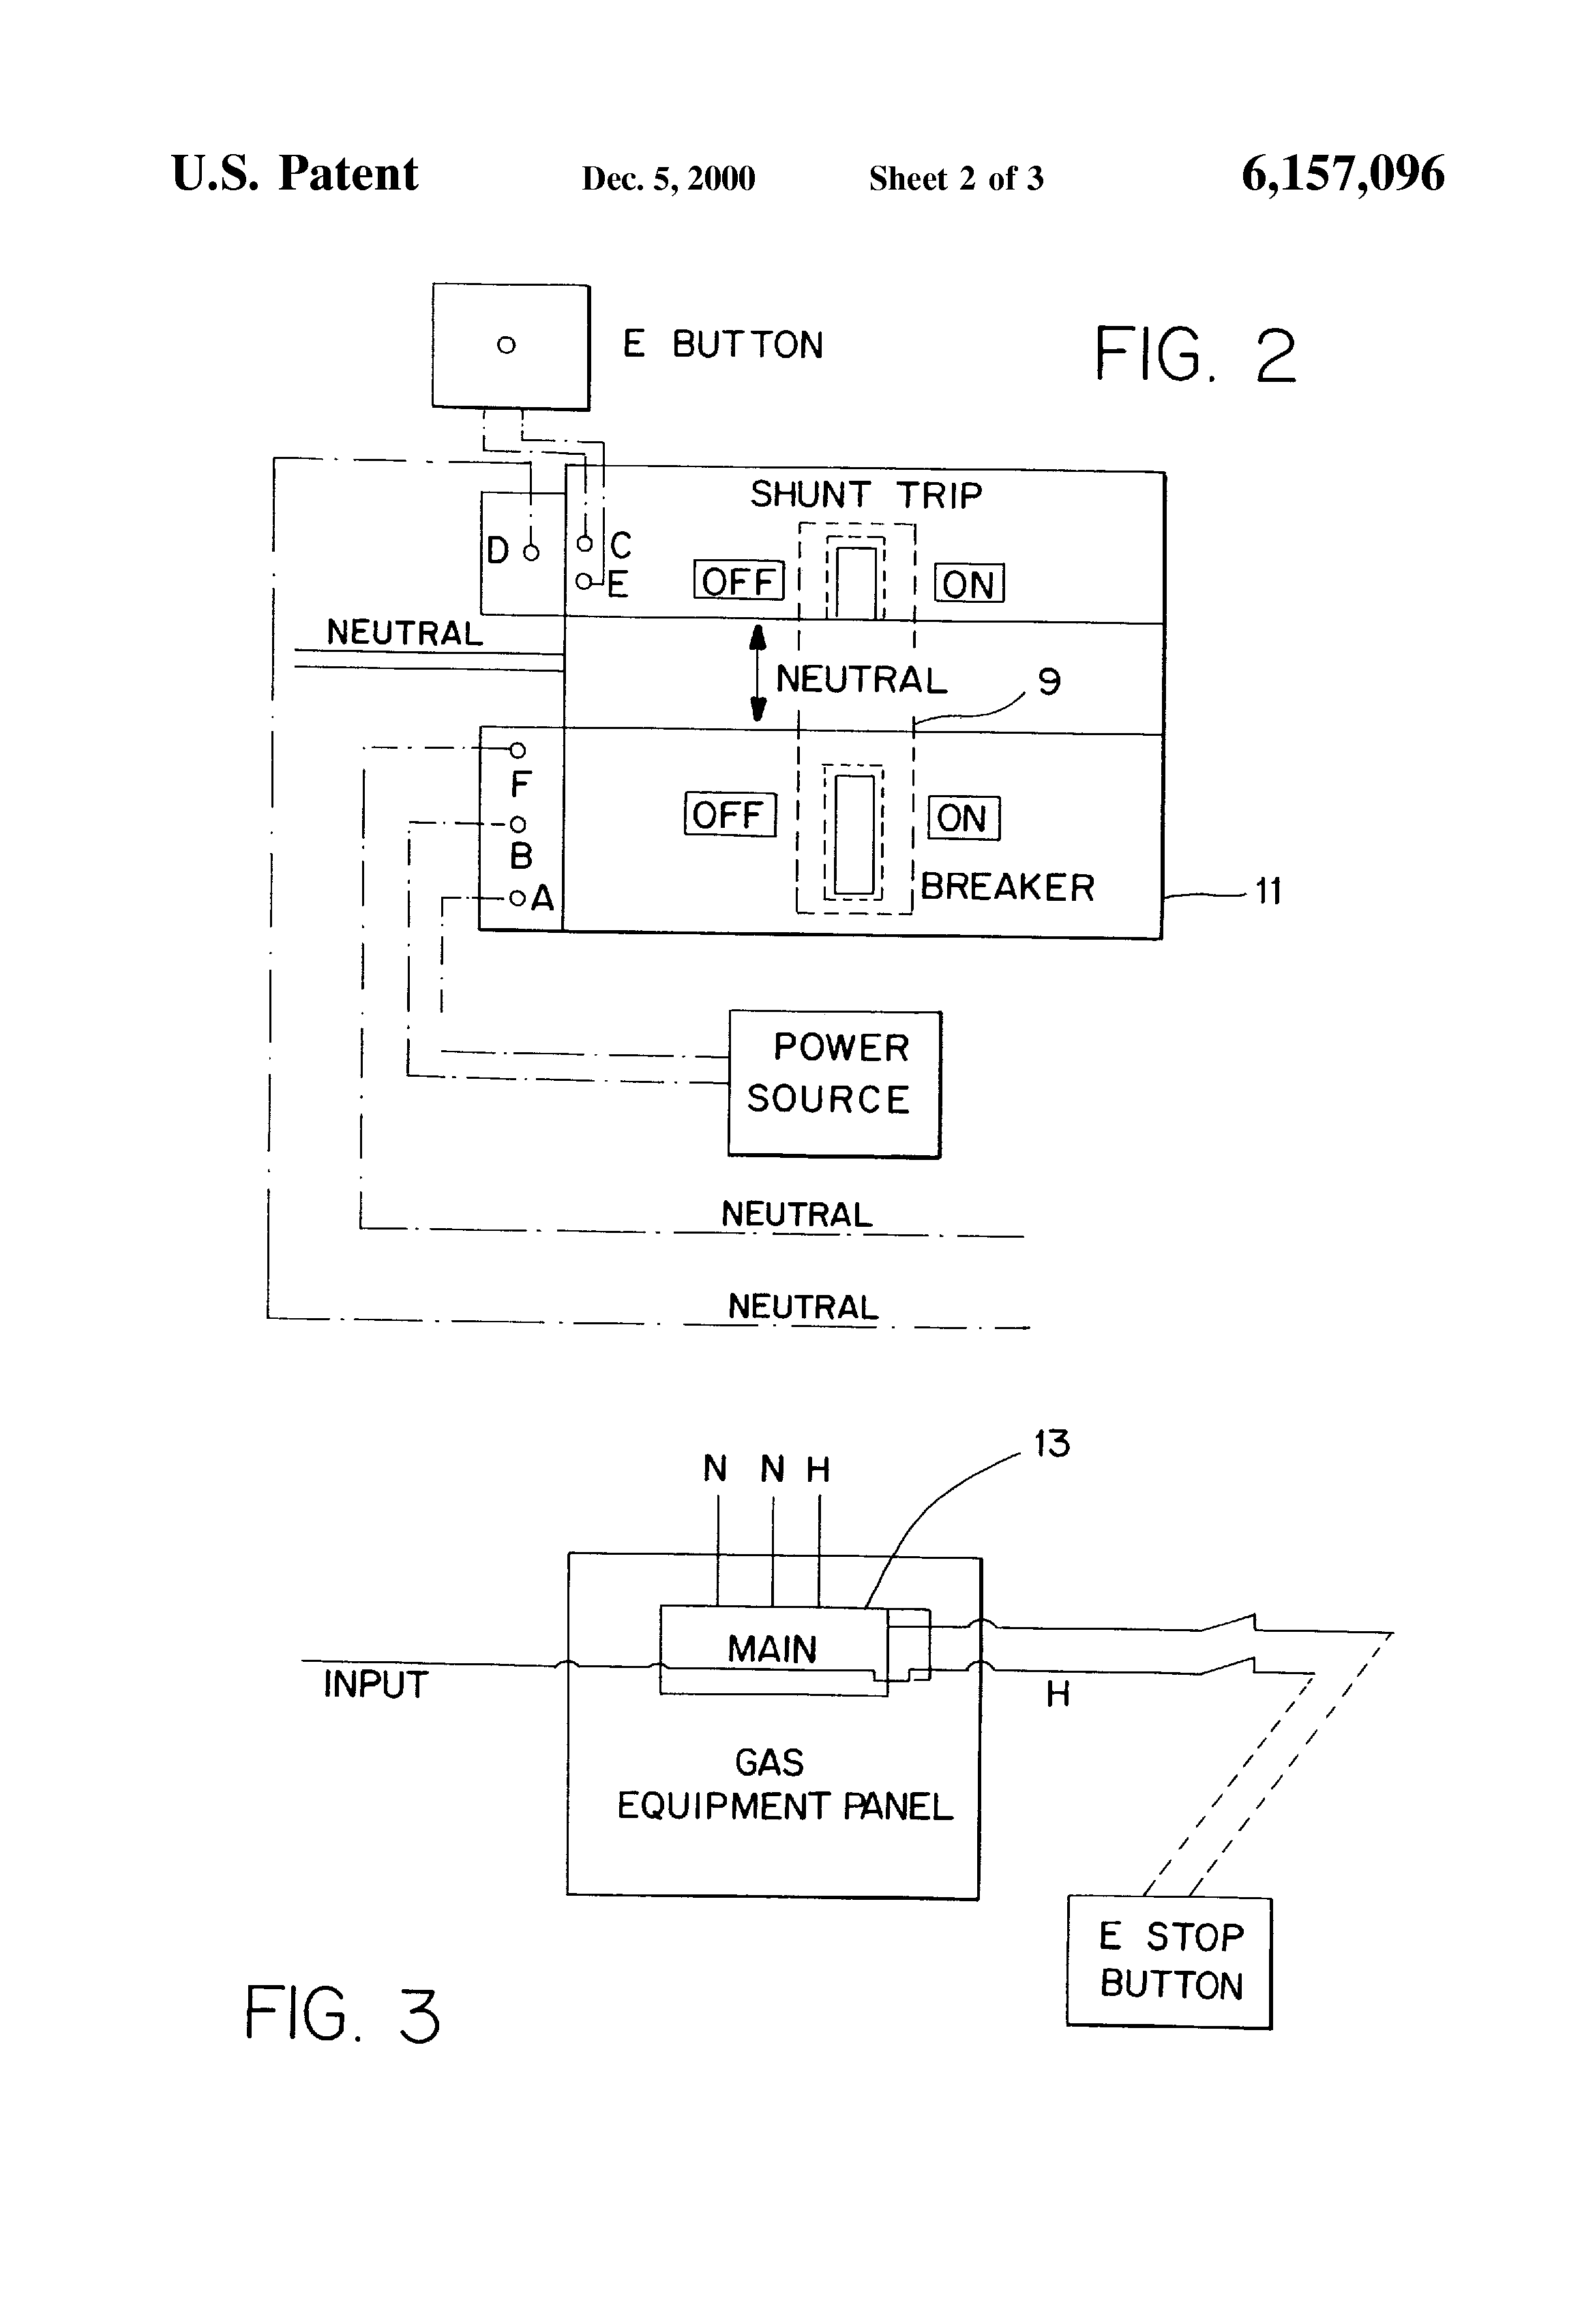 US6157096 2 patent us6157096 neutral switched shunt trip emergency gas panel square d shunt trip diagram at mifinder.co